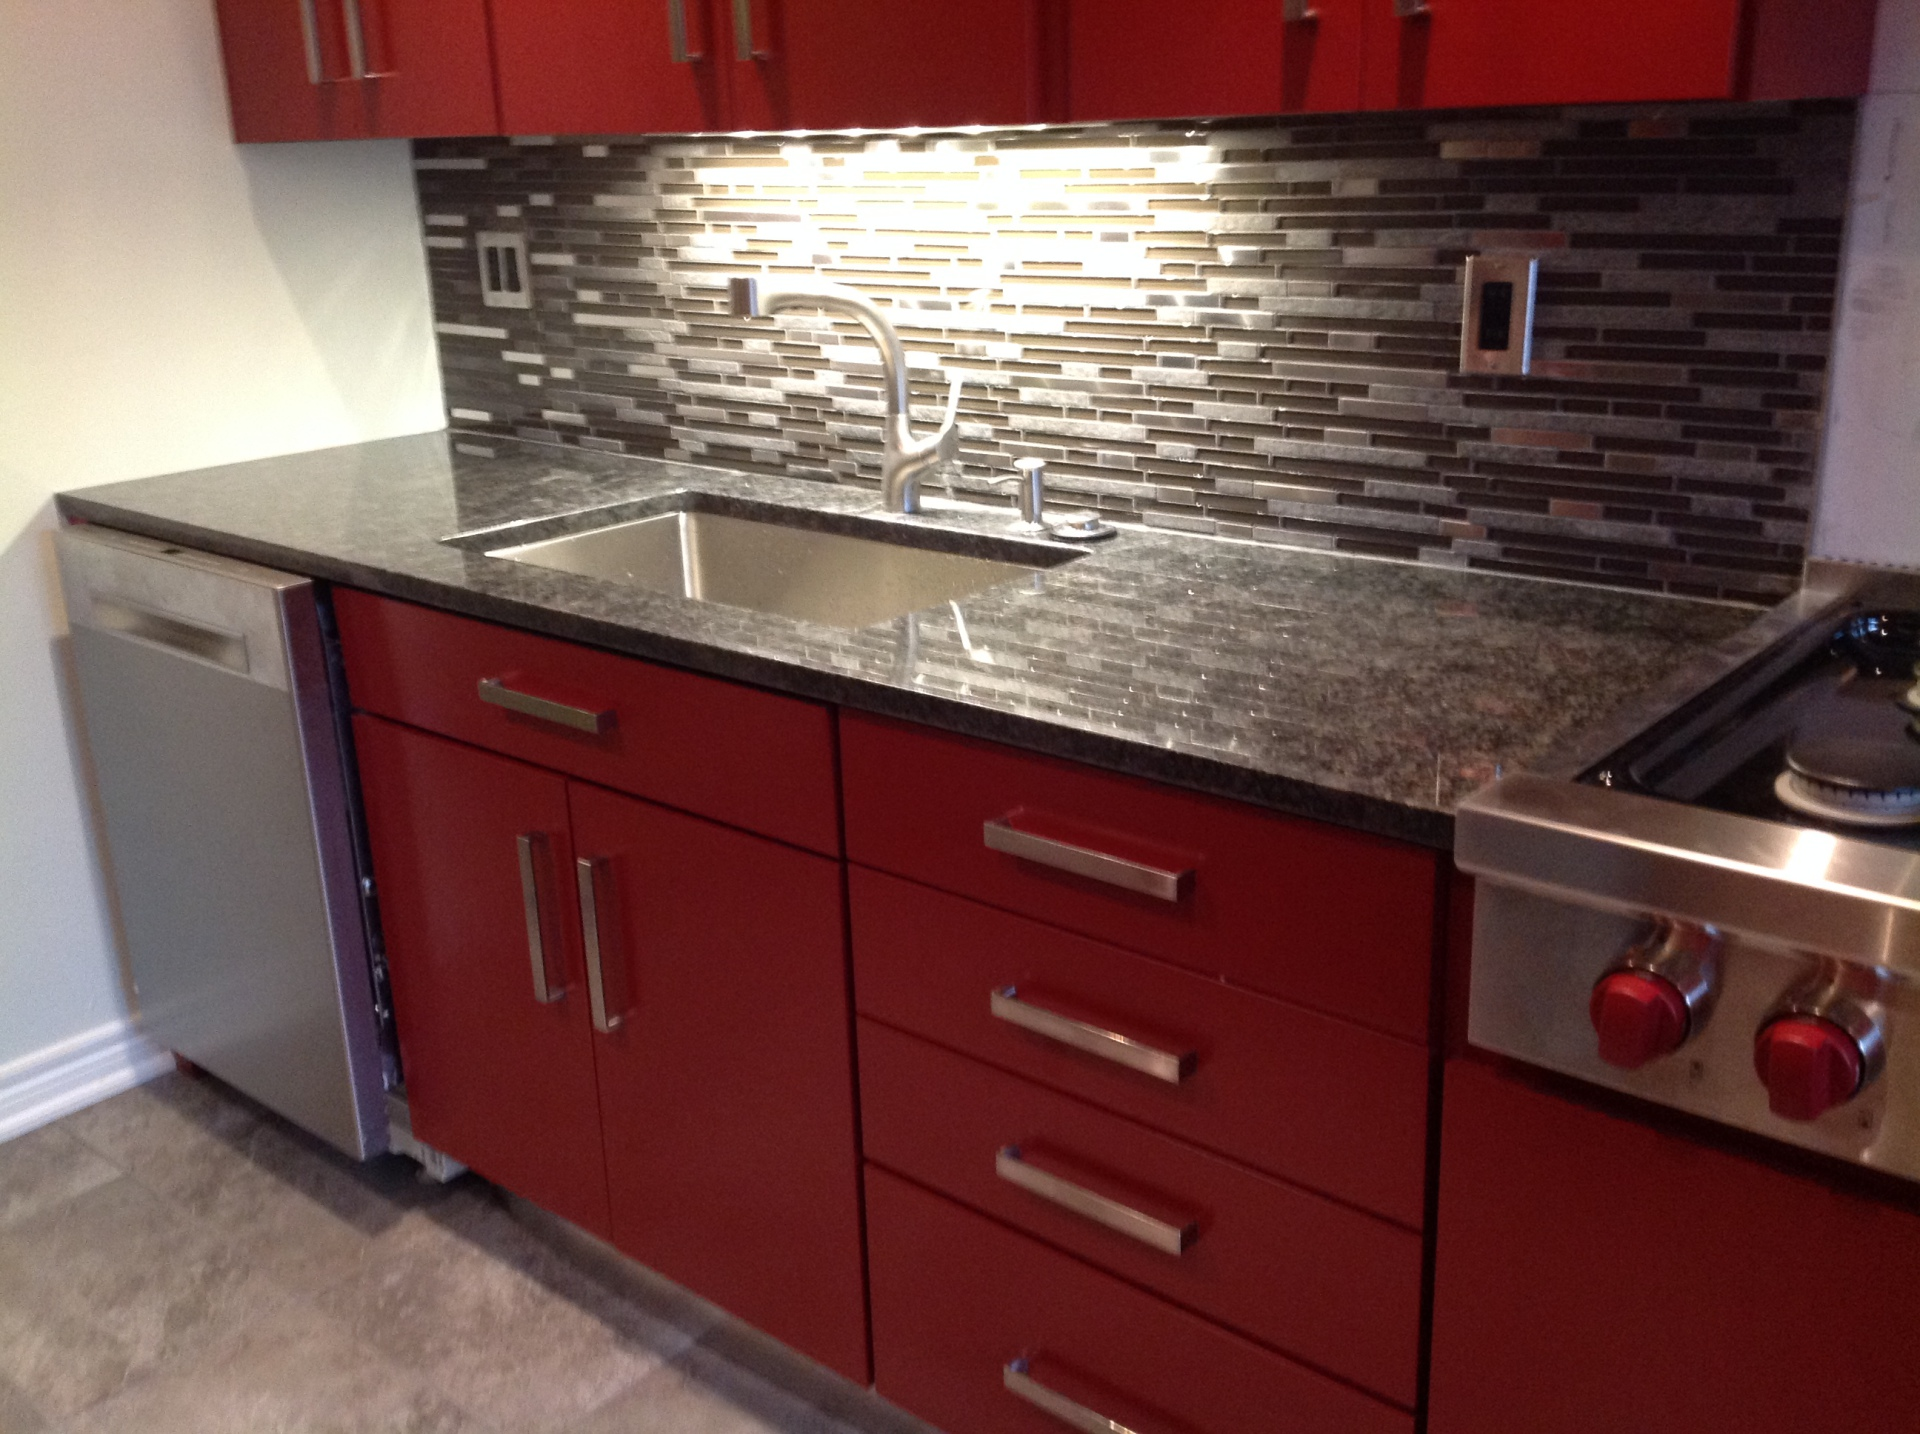 Red Gloss Kitchen with granite and marble/steel backsplash